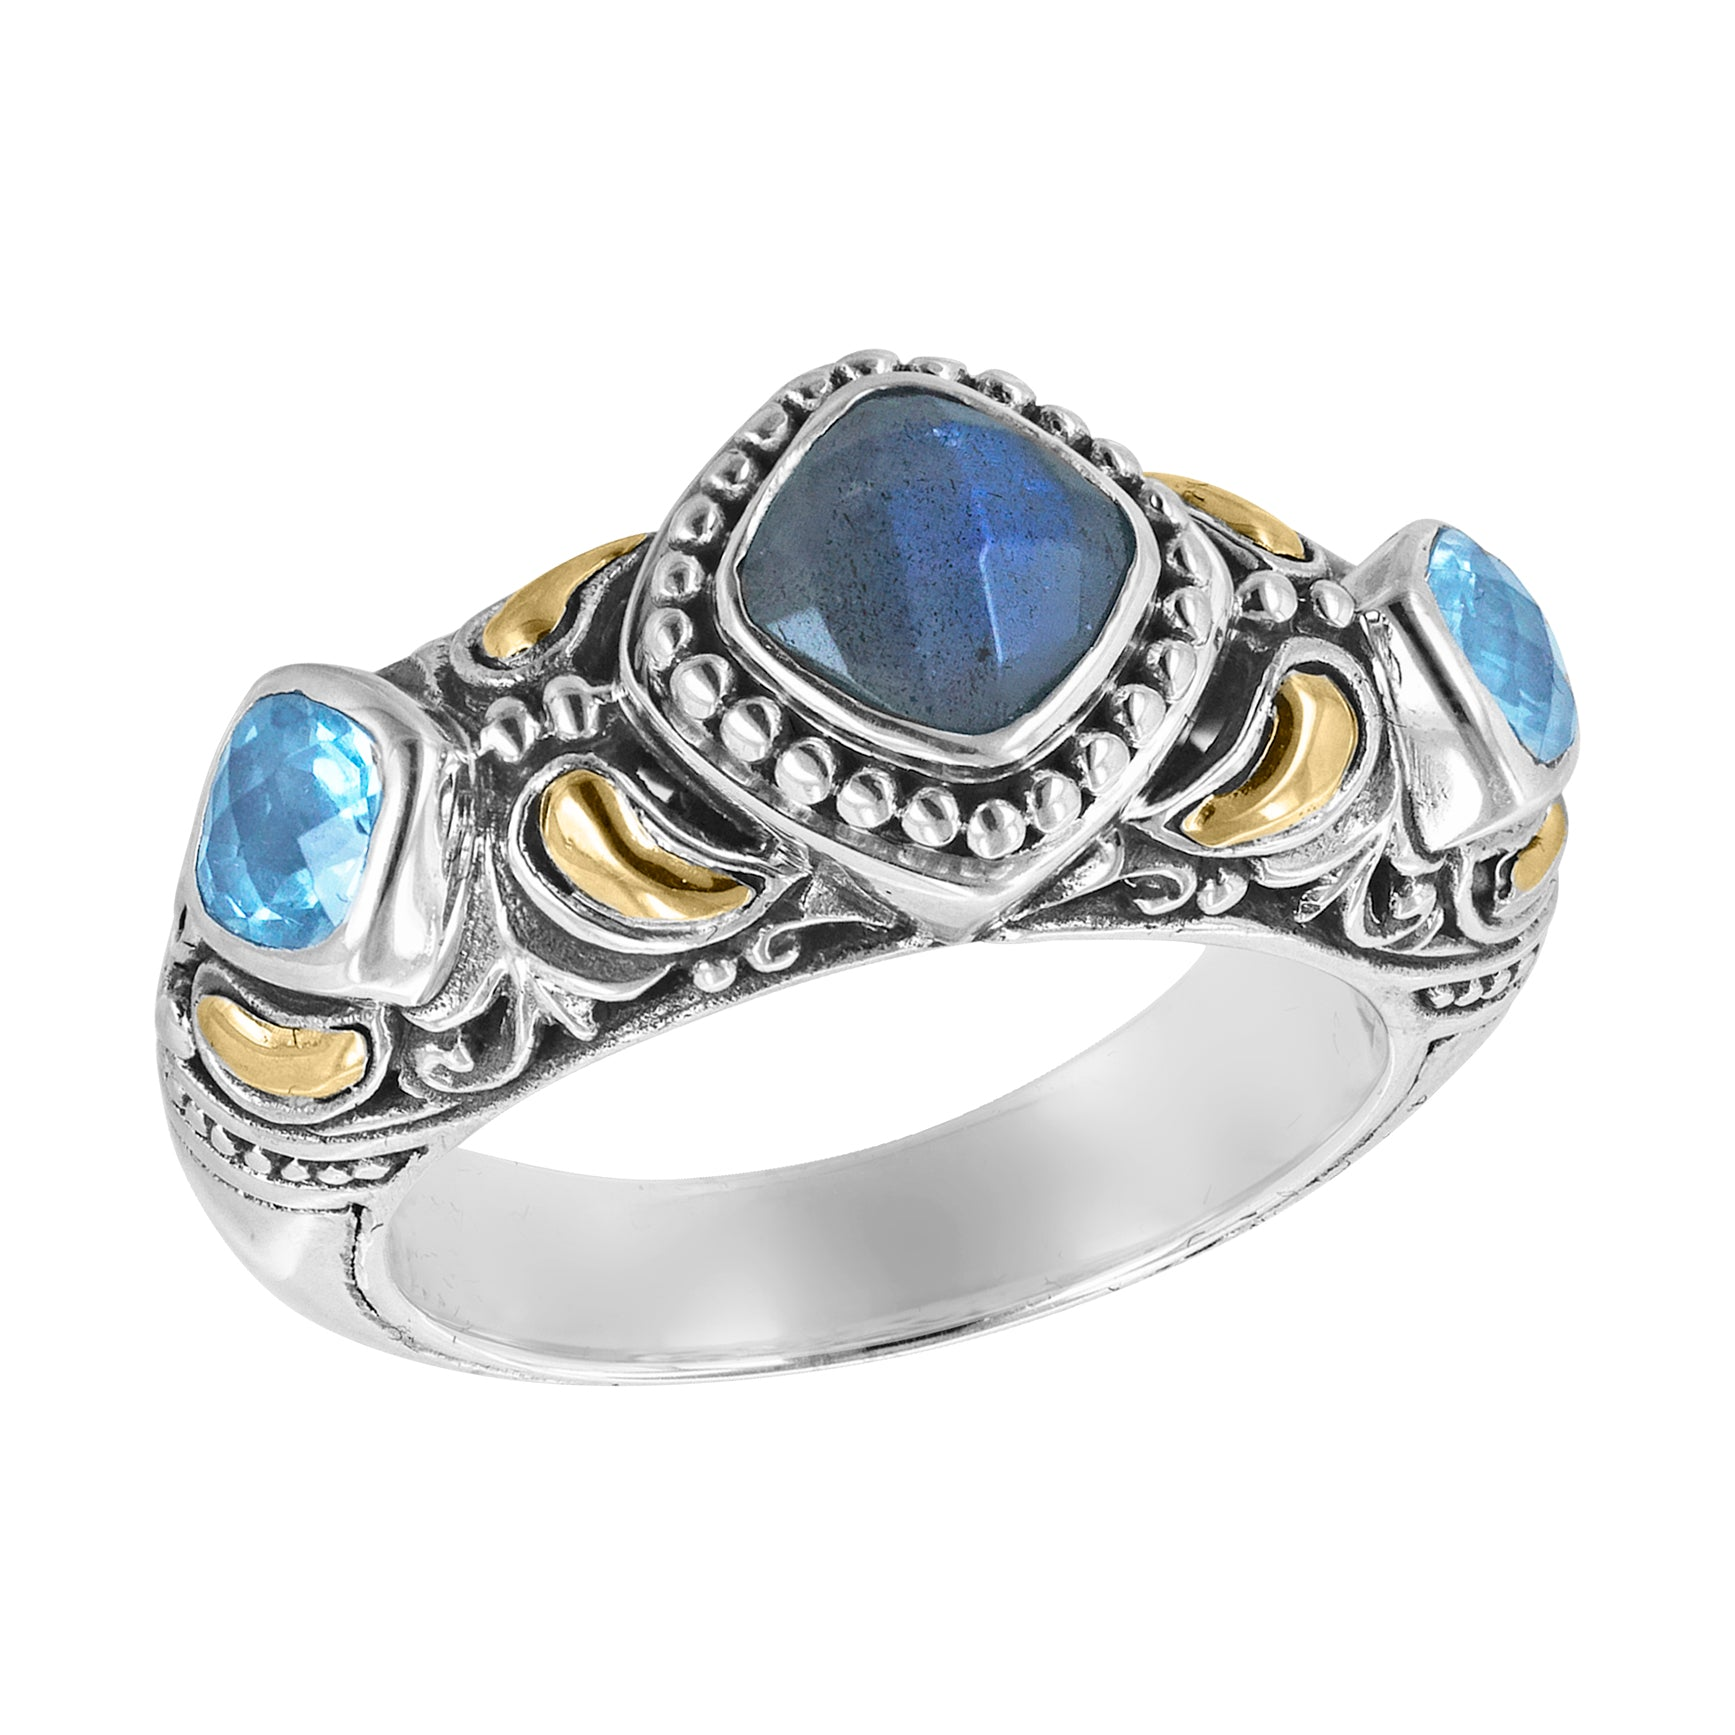 Sterling Silver Labradorite Swiss Blue Topaz Scroll Work Ring with 18K Gold Accents